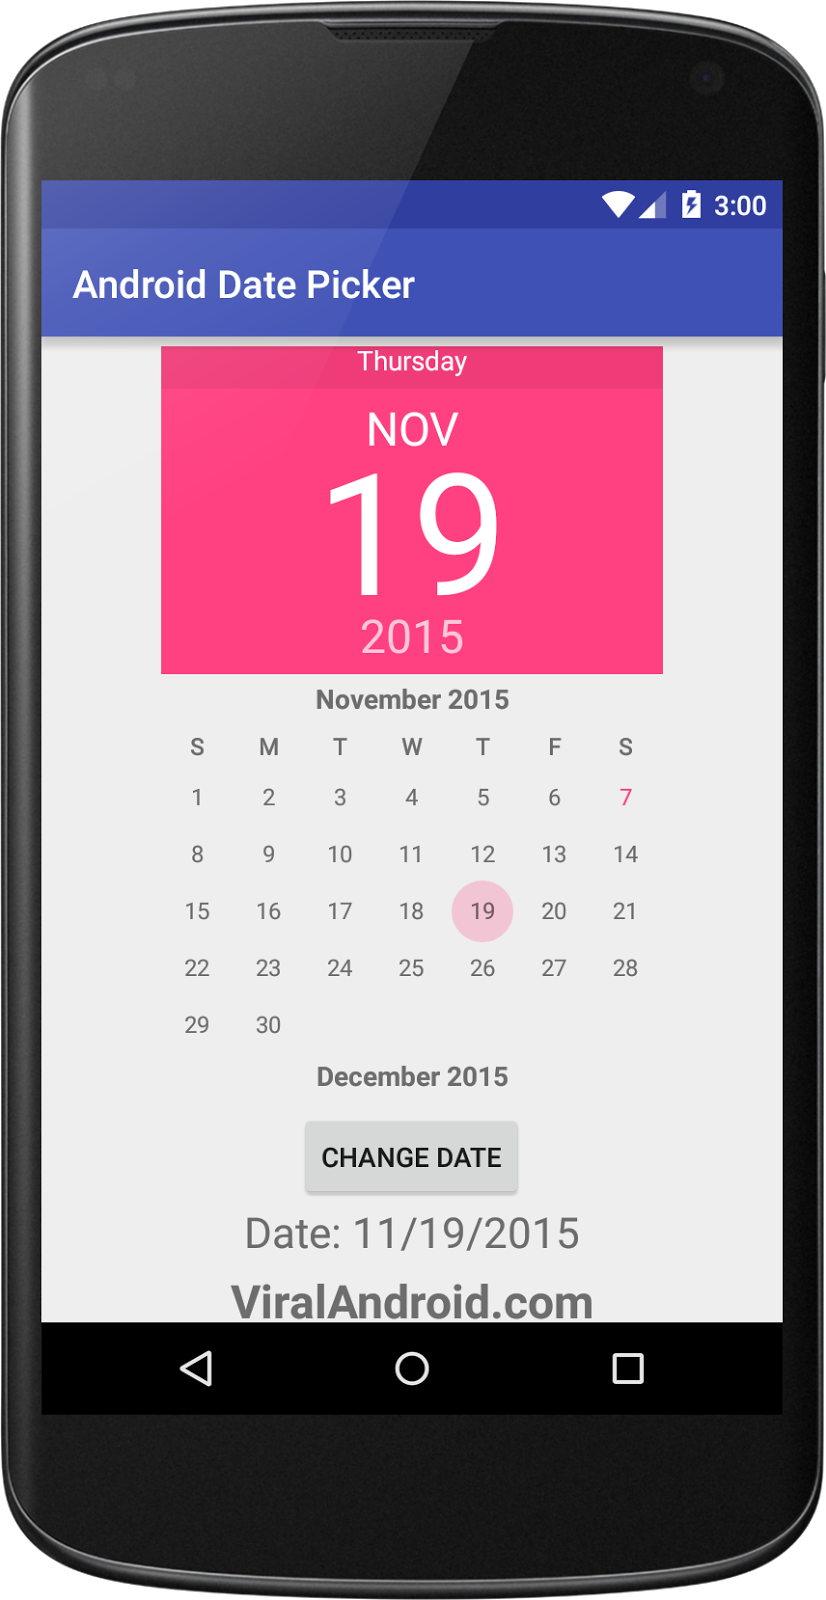 Android Date Picker Example